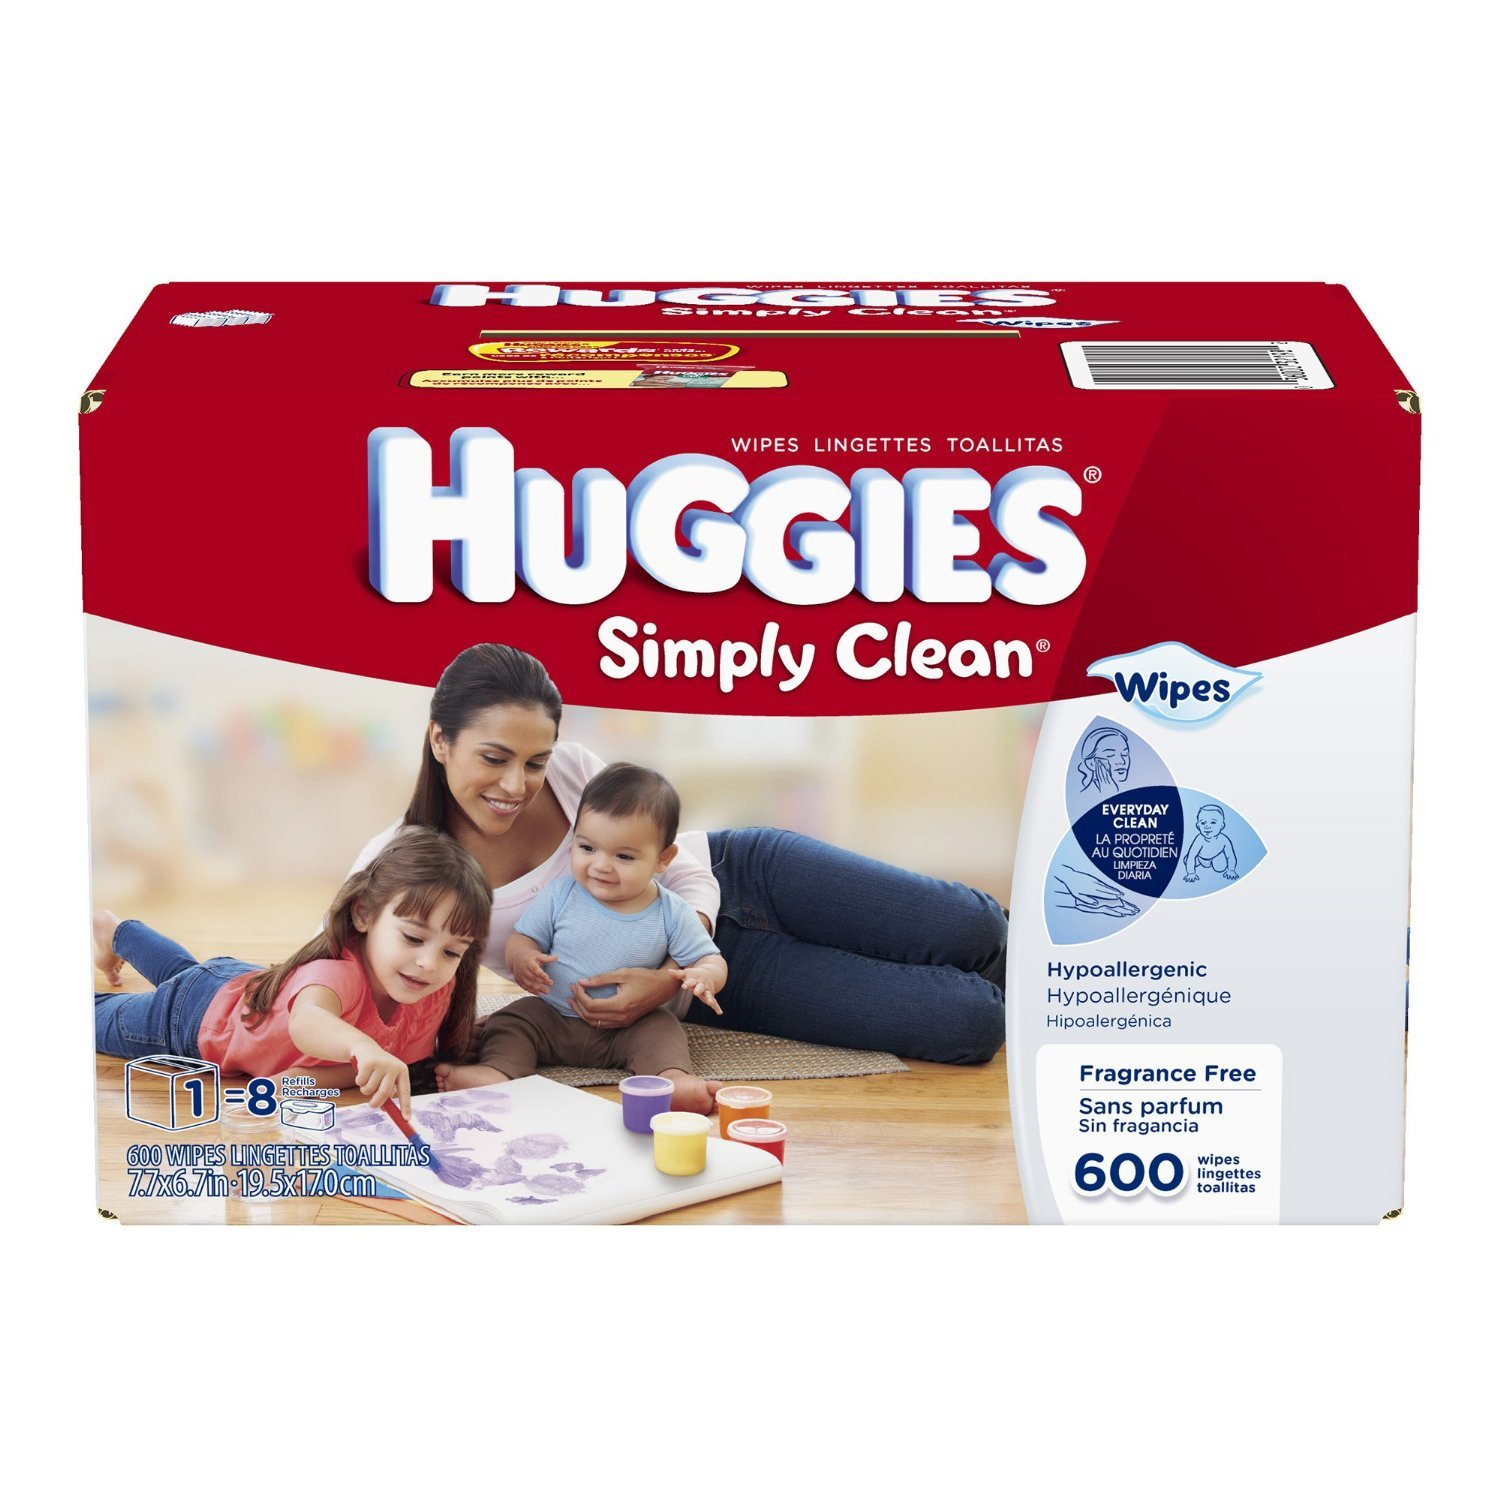 Huggies Simply Clean Fragrance Free Baby Wipes Refill (1200 Count)